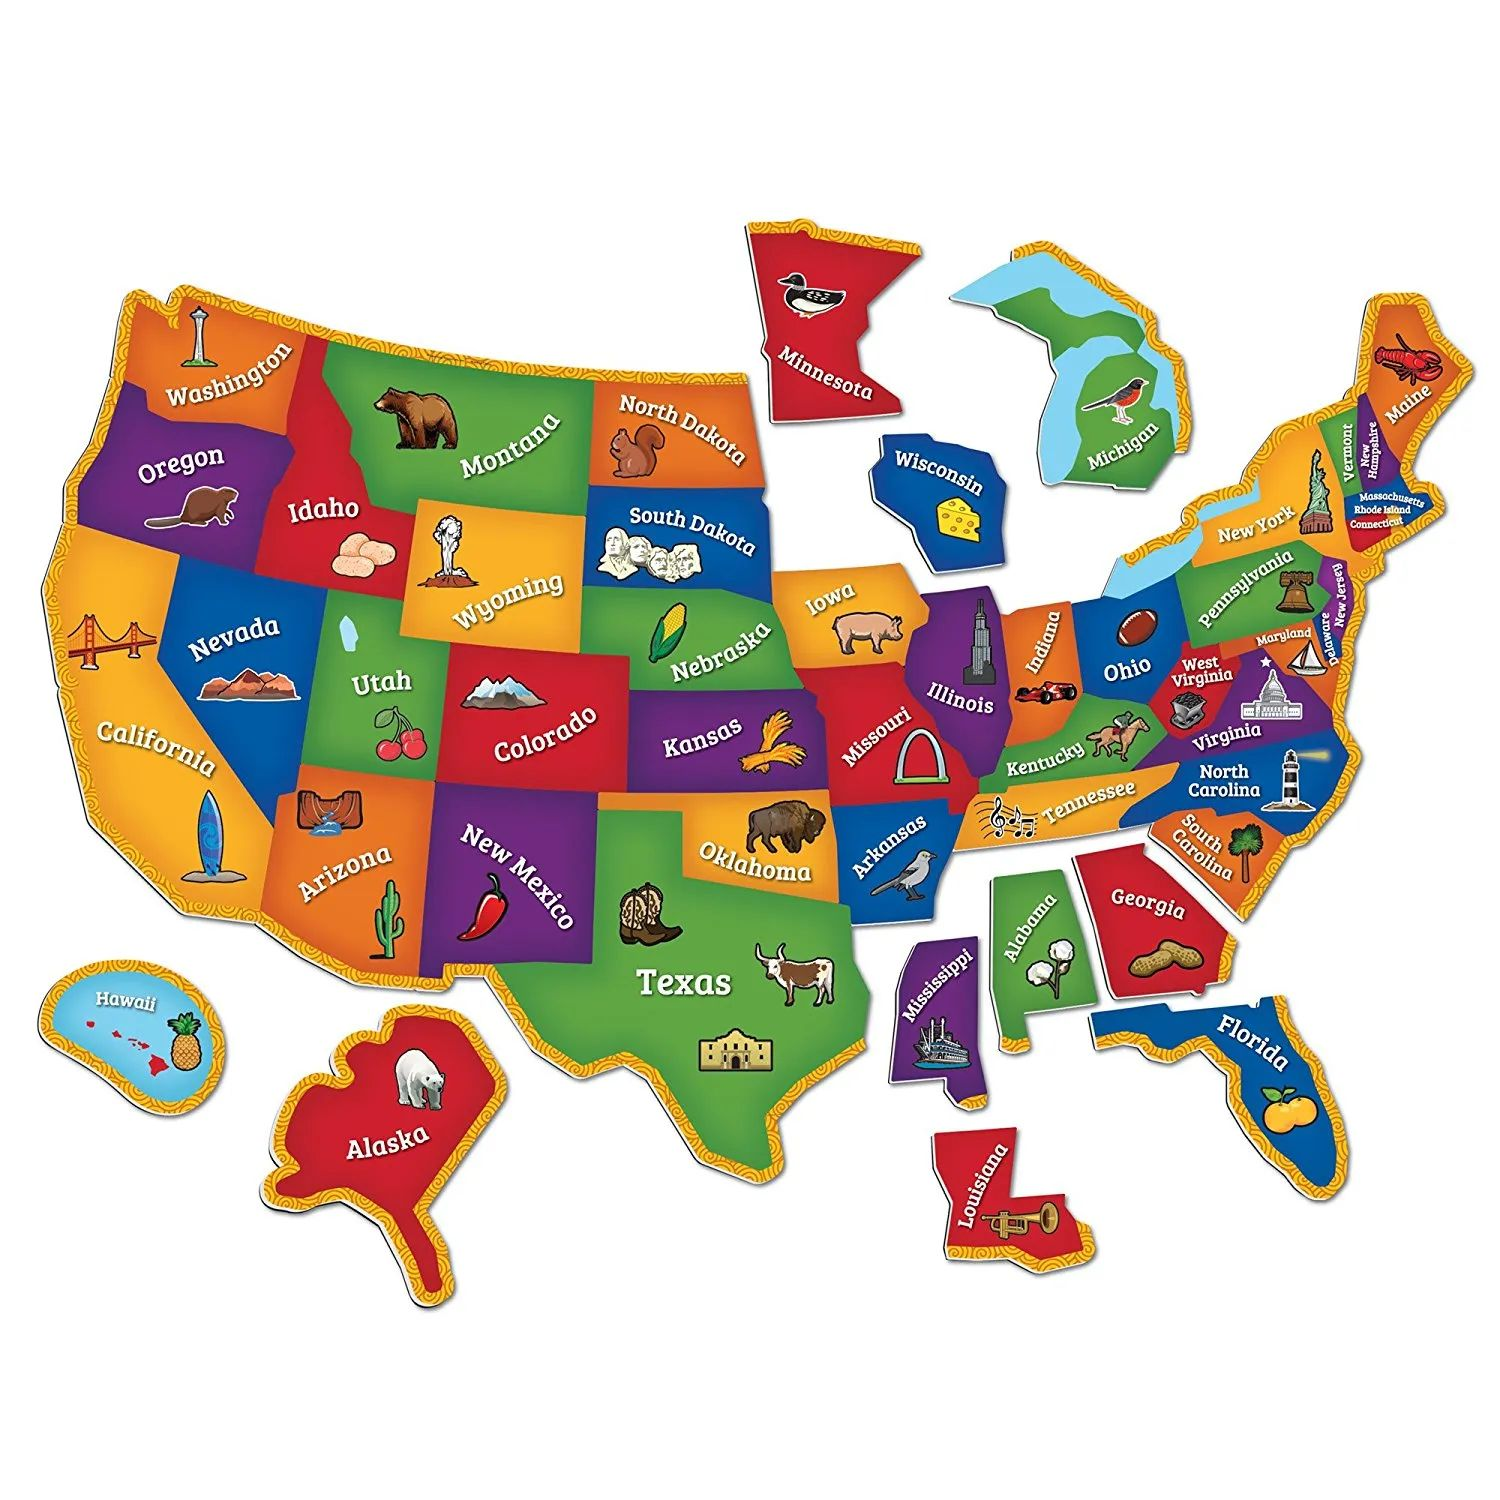 One of the limitations of google maps is its inability to save map images. Magnetic U S Map Puzzle